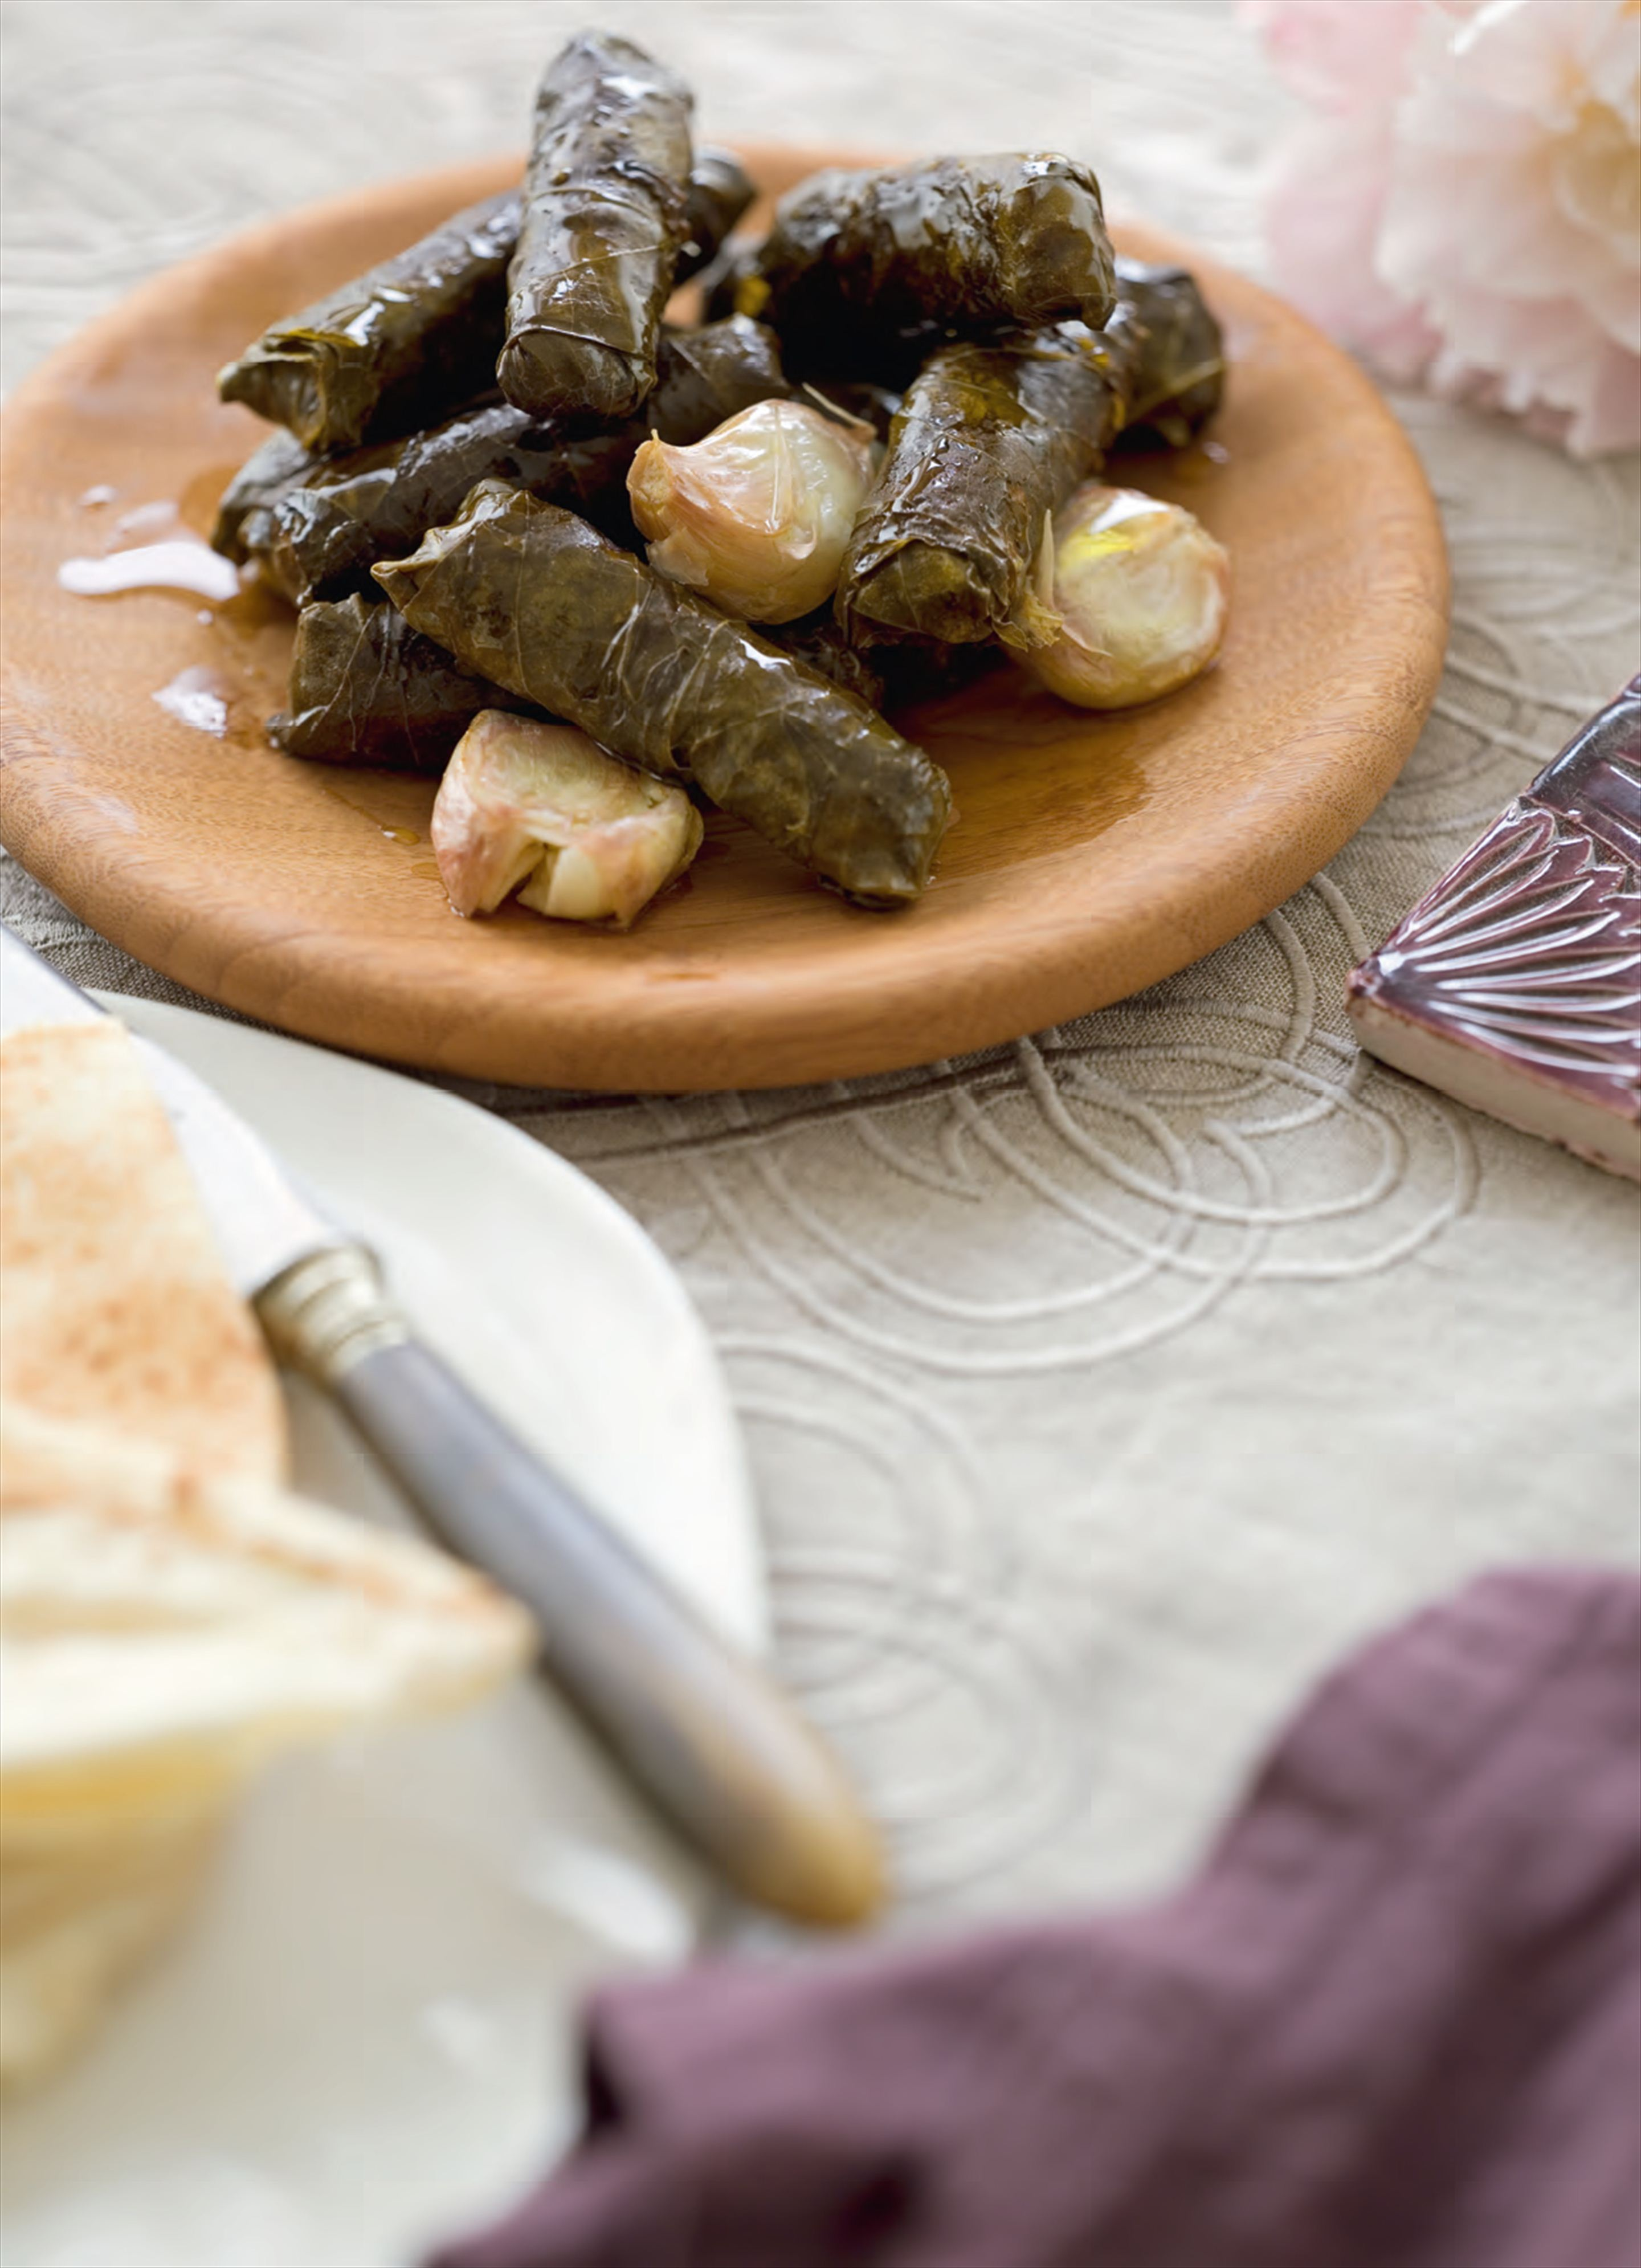 May's stuffed vine leaves with mint labne